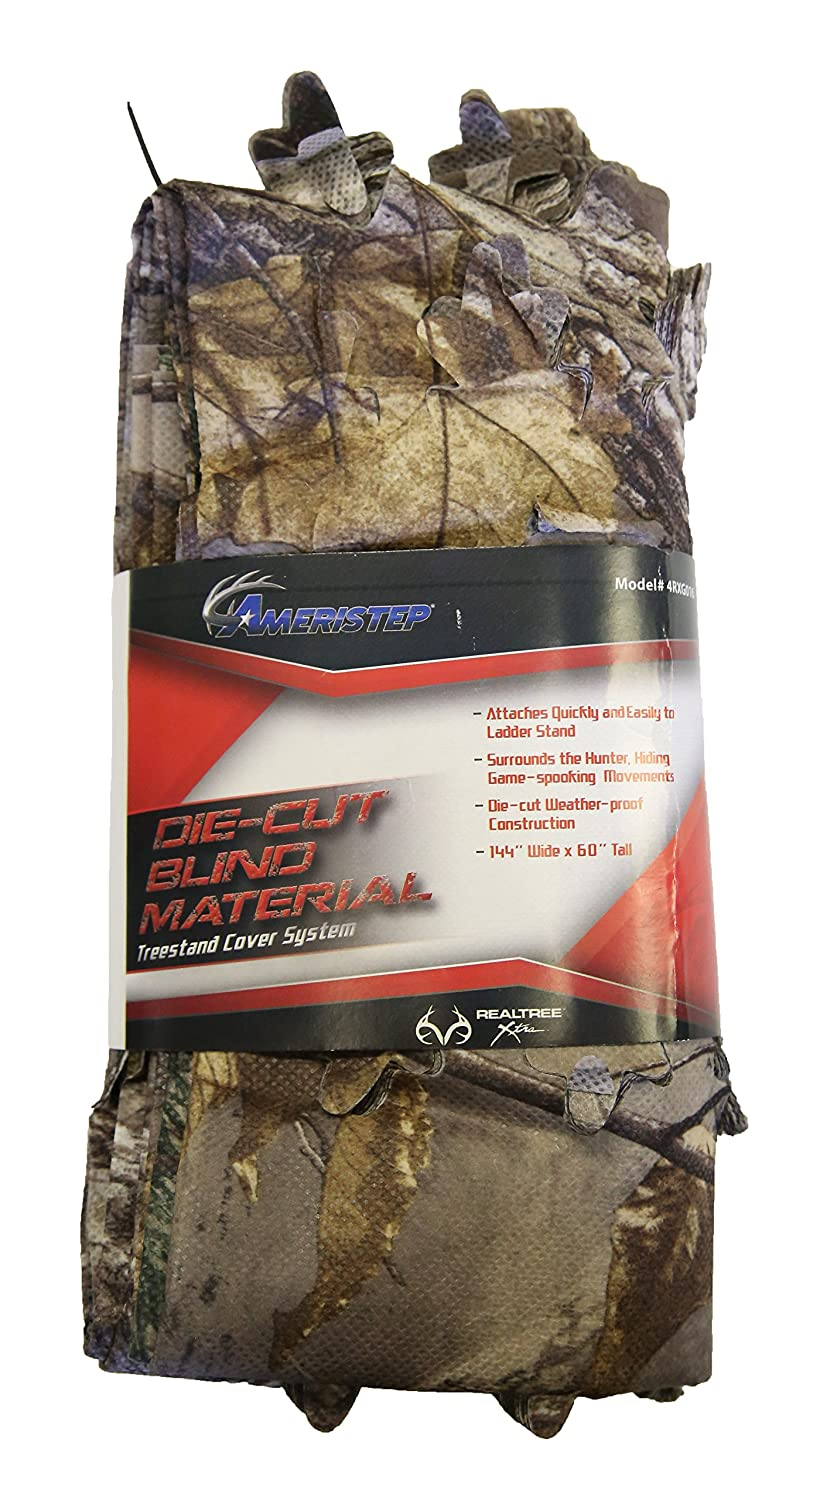 s product realtree x xtra blinds material camo blind hunters hunter specialties mpn mesh polyester